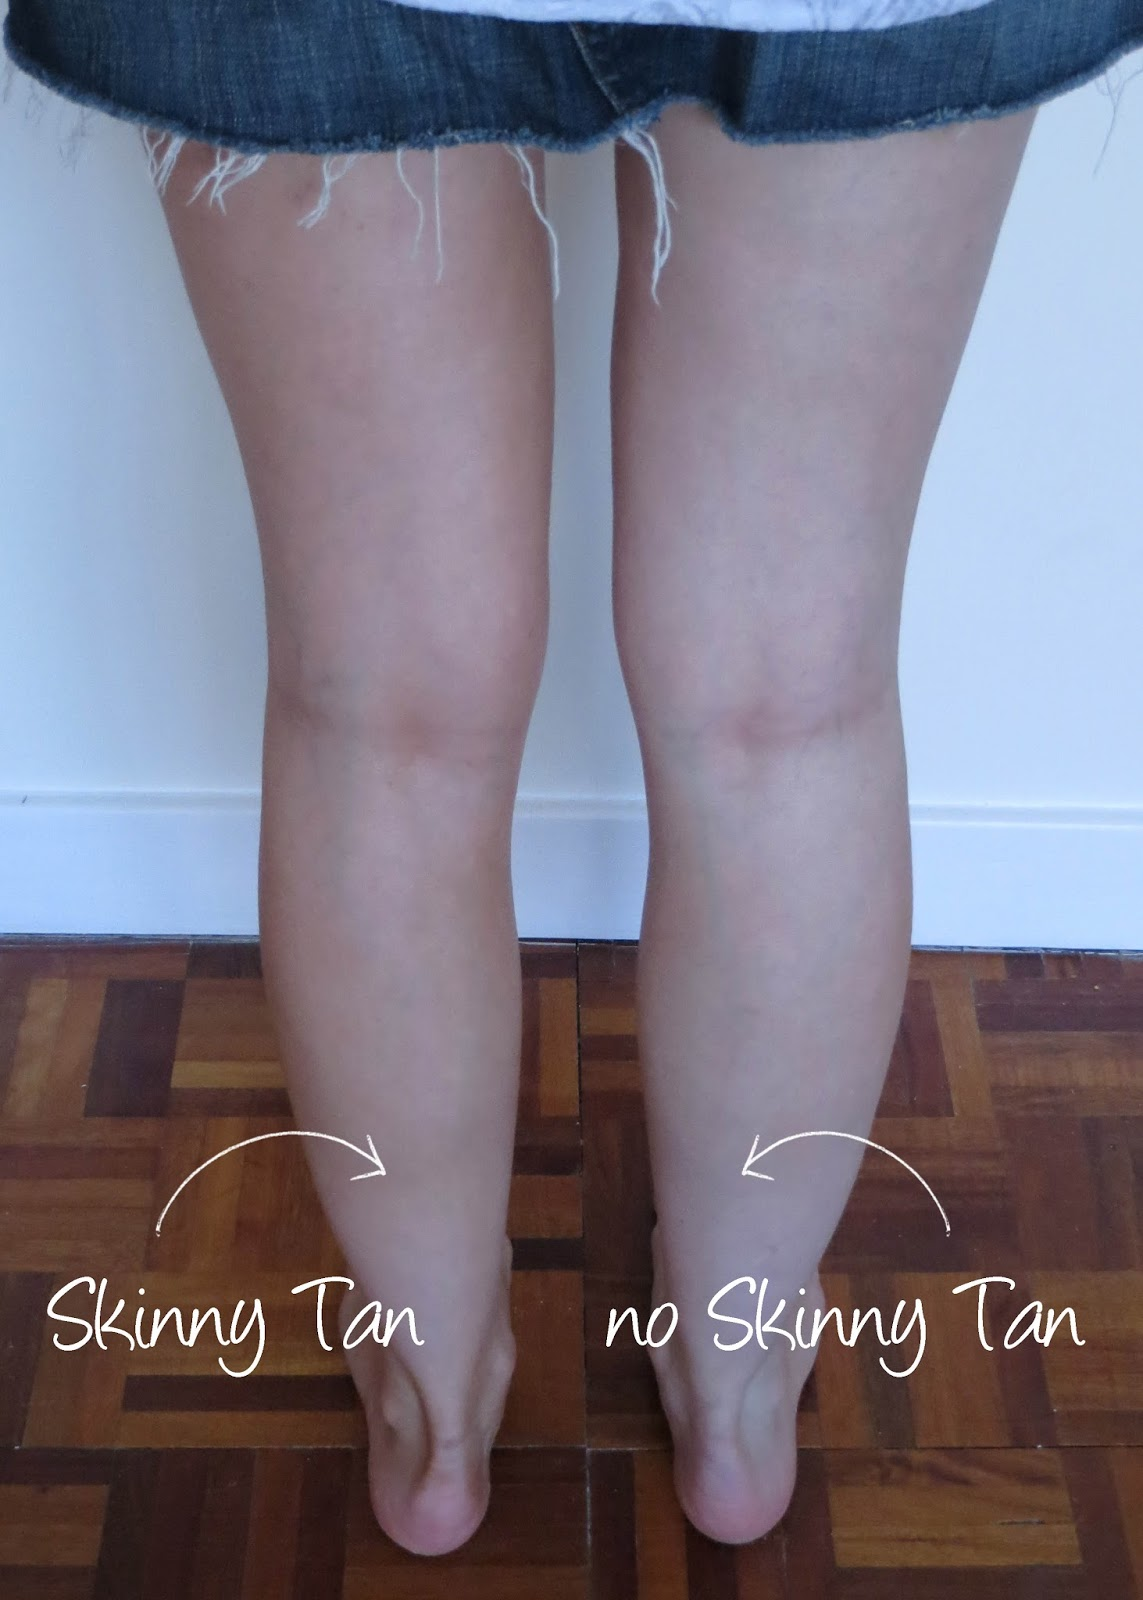 How Do I Get Rid Of Cellulite Fast